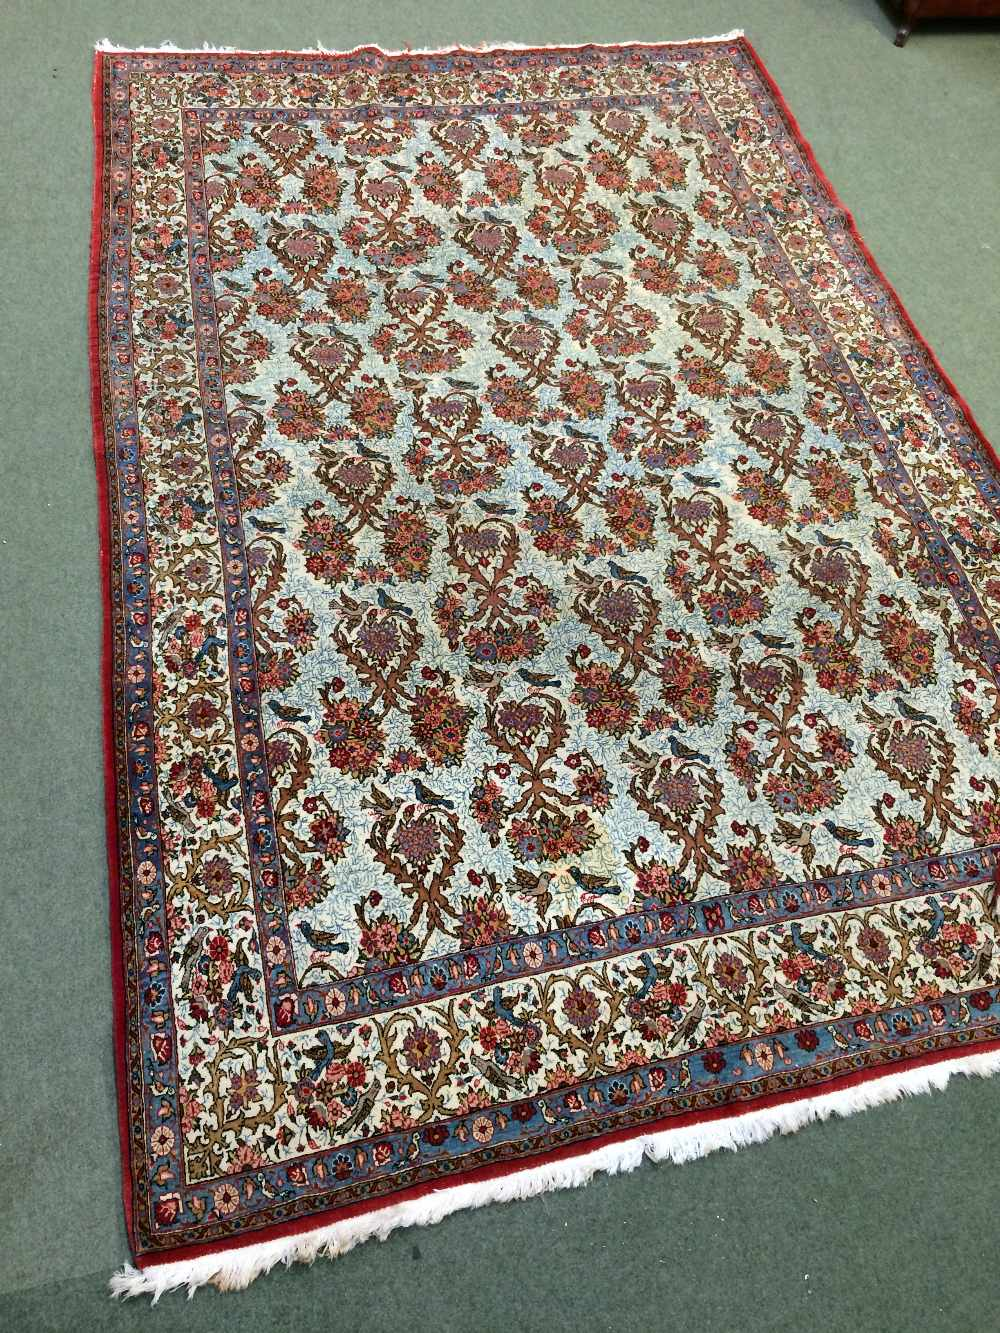 Lot 701 - Fine Qum Persian carpet circa 1930 3.33 X 2.24m